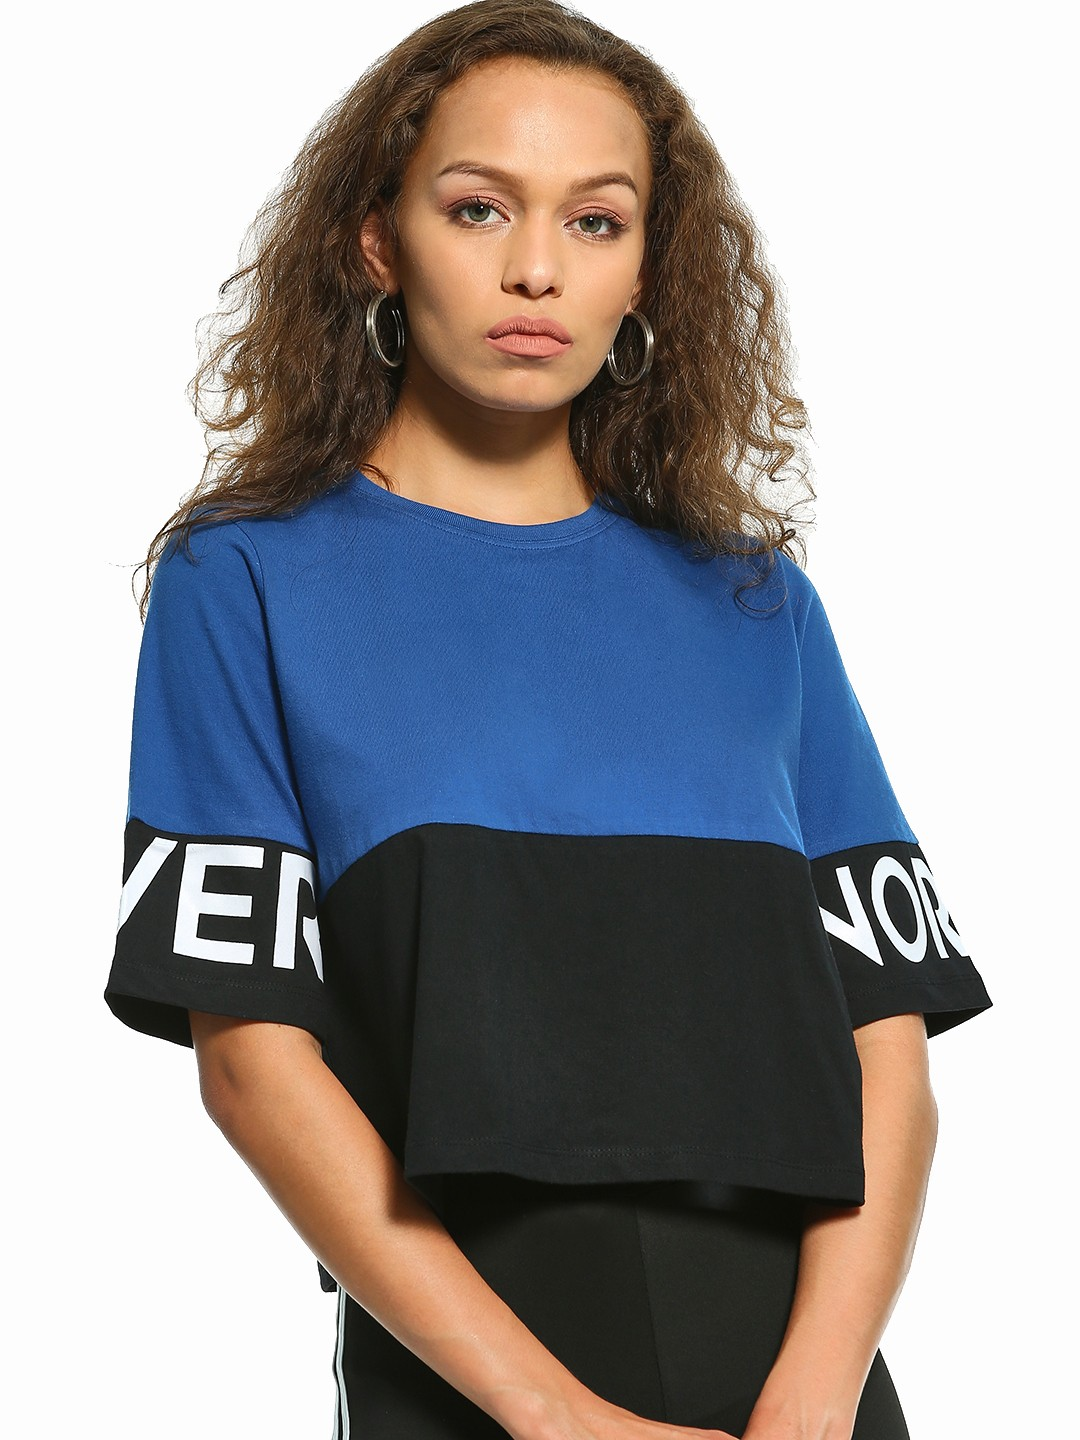 Disrupt Multi Color Block Slogan Print Crop T-Shirt 1